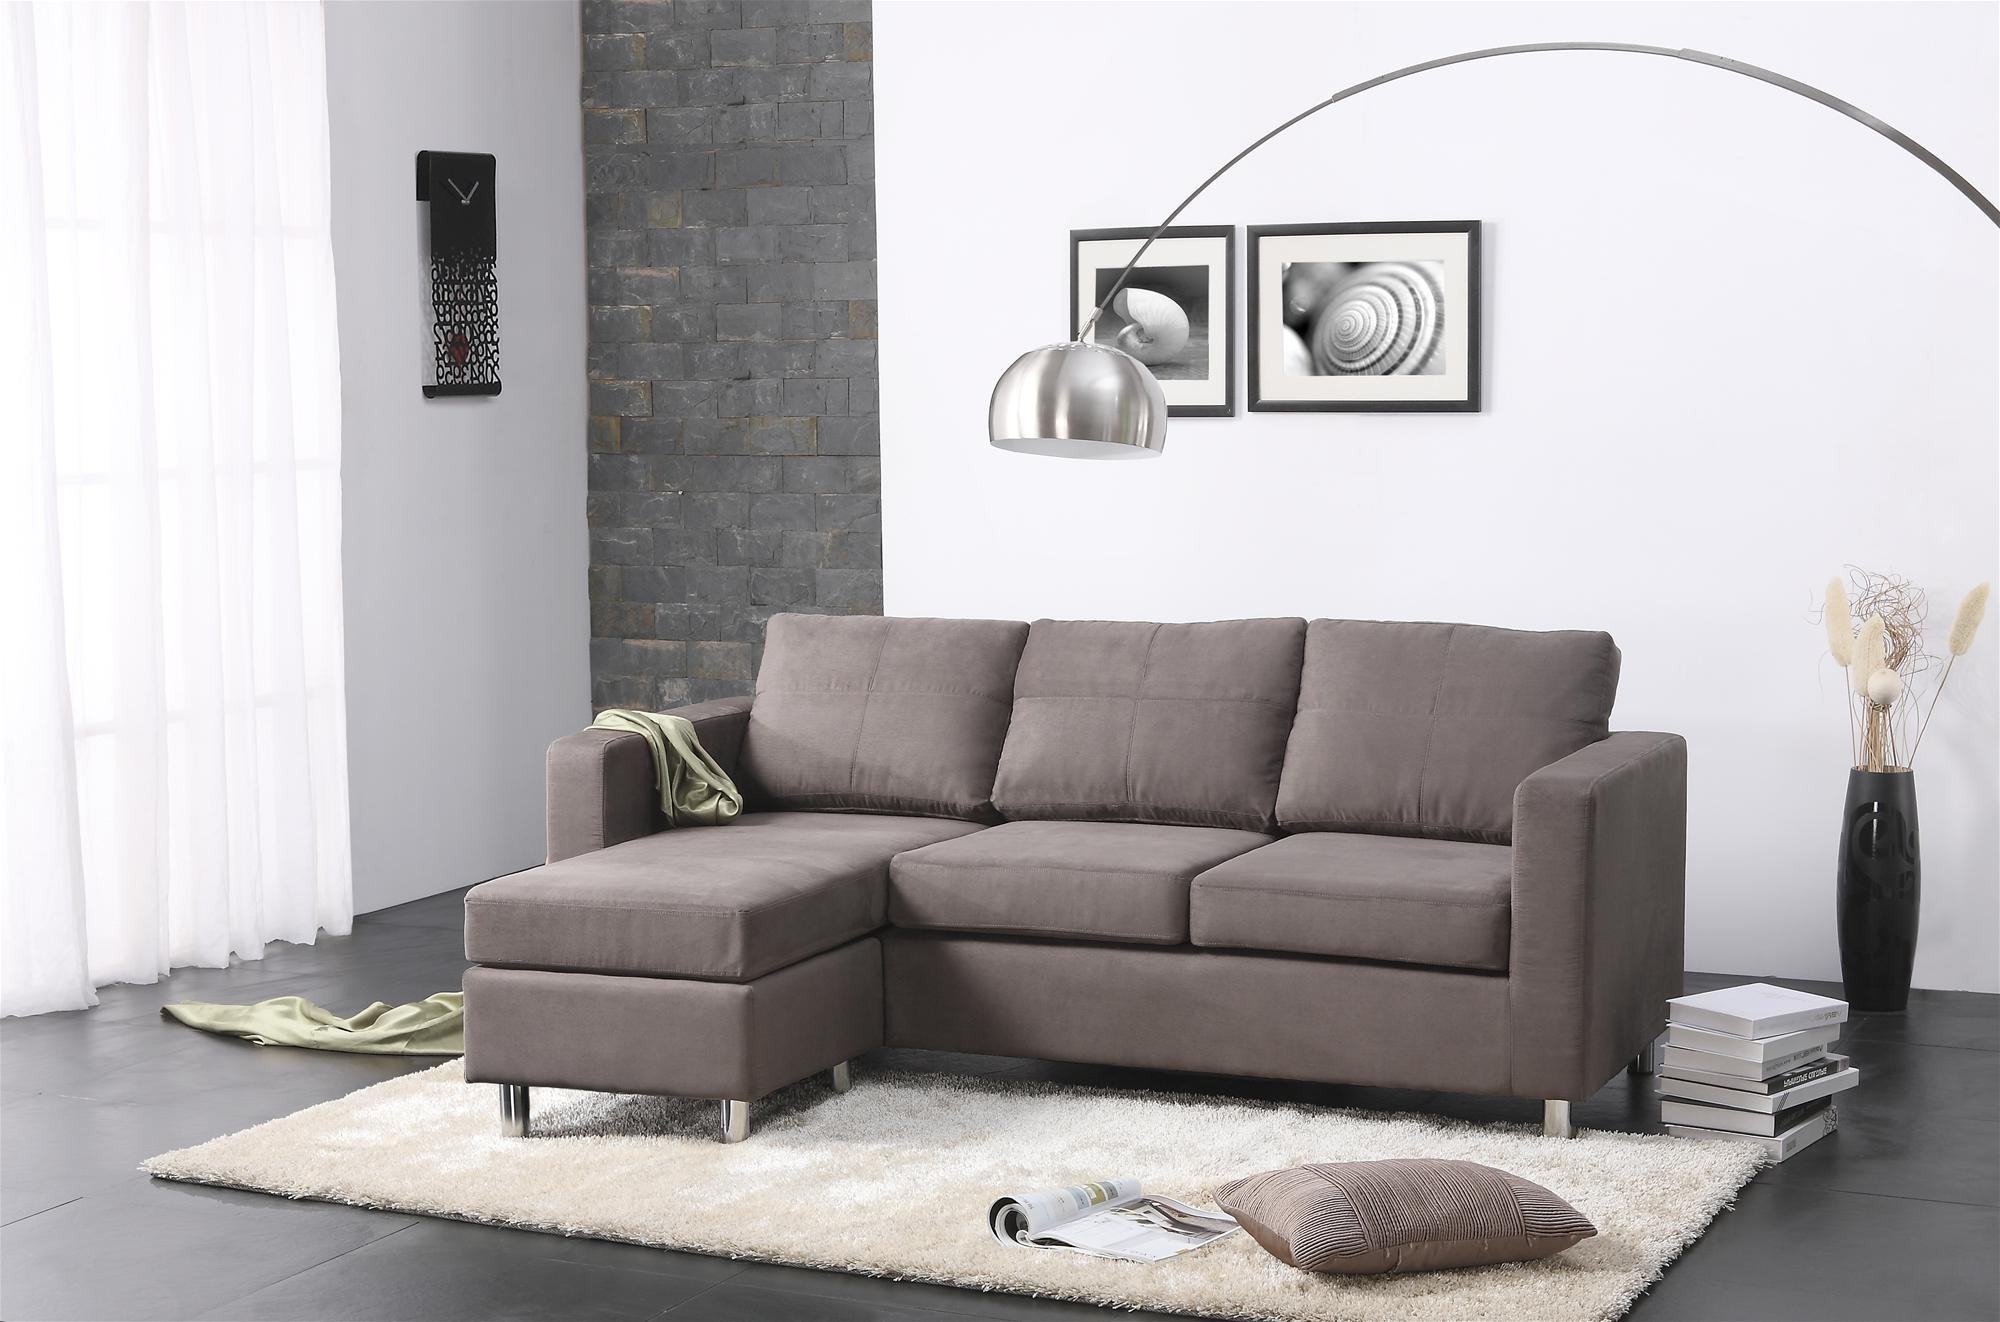 Sectional Sofas For Small Spaces Intended For Well Known Sofa : Small Sofas For Small Spaces Tiny Sleeper Sofa Retro Sofa (View 16 of 20)